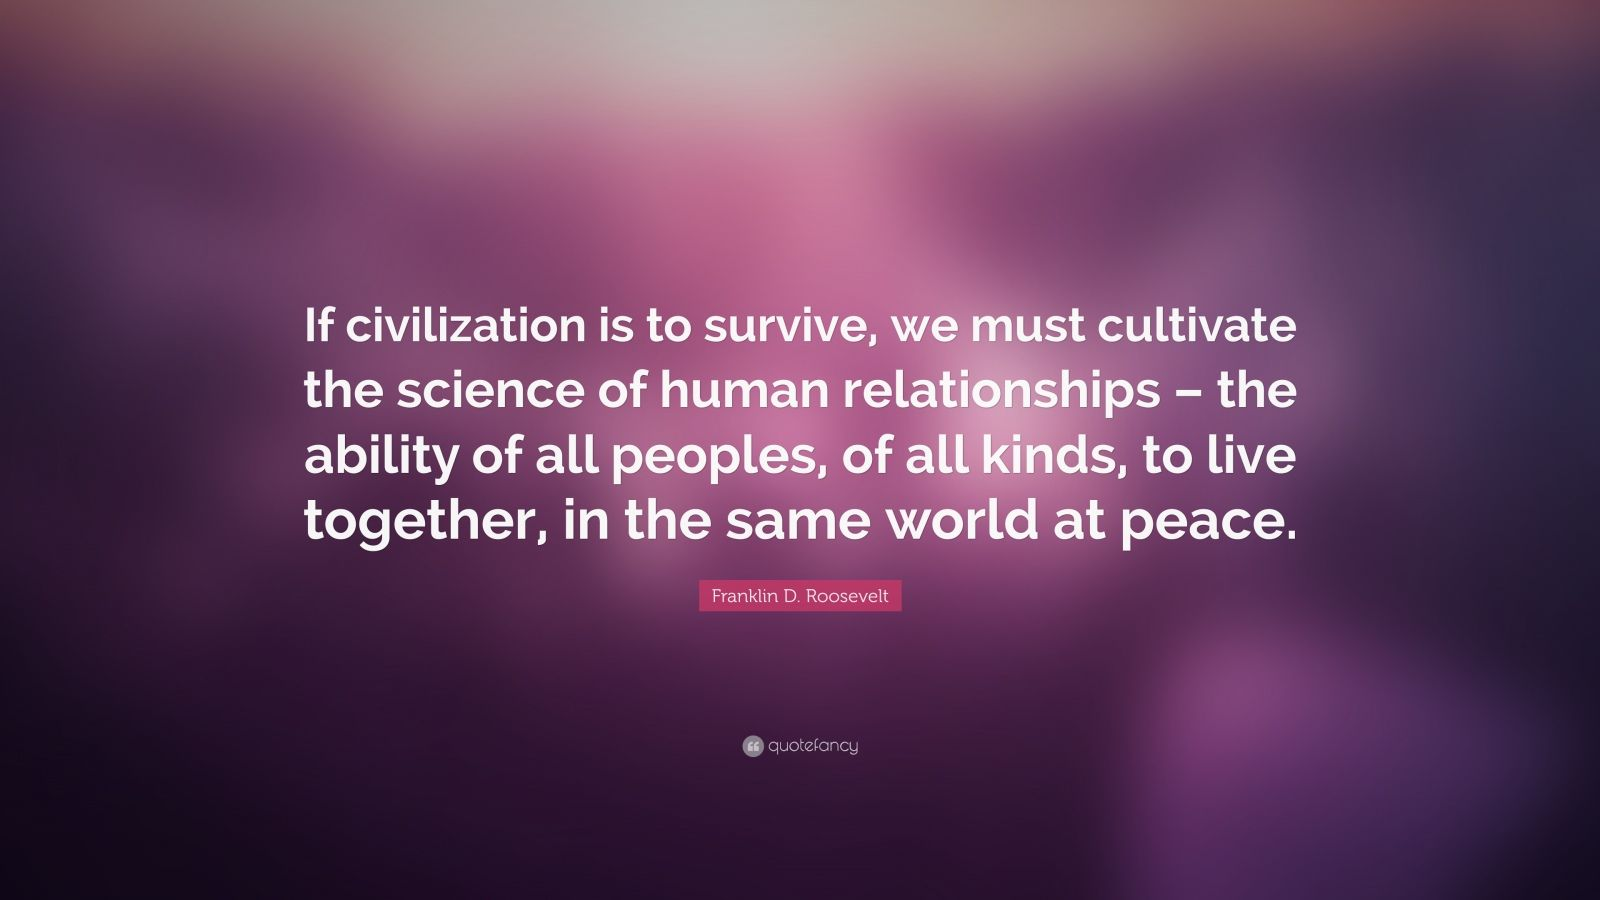 """Franklin D. Roosevelt Quote: """"If civilization is to survive, we must cultivate the science of human relationships – the ability of all peoples, of all kinds, to live together, in the same world at peace."""""""